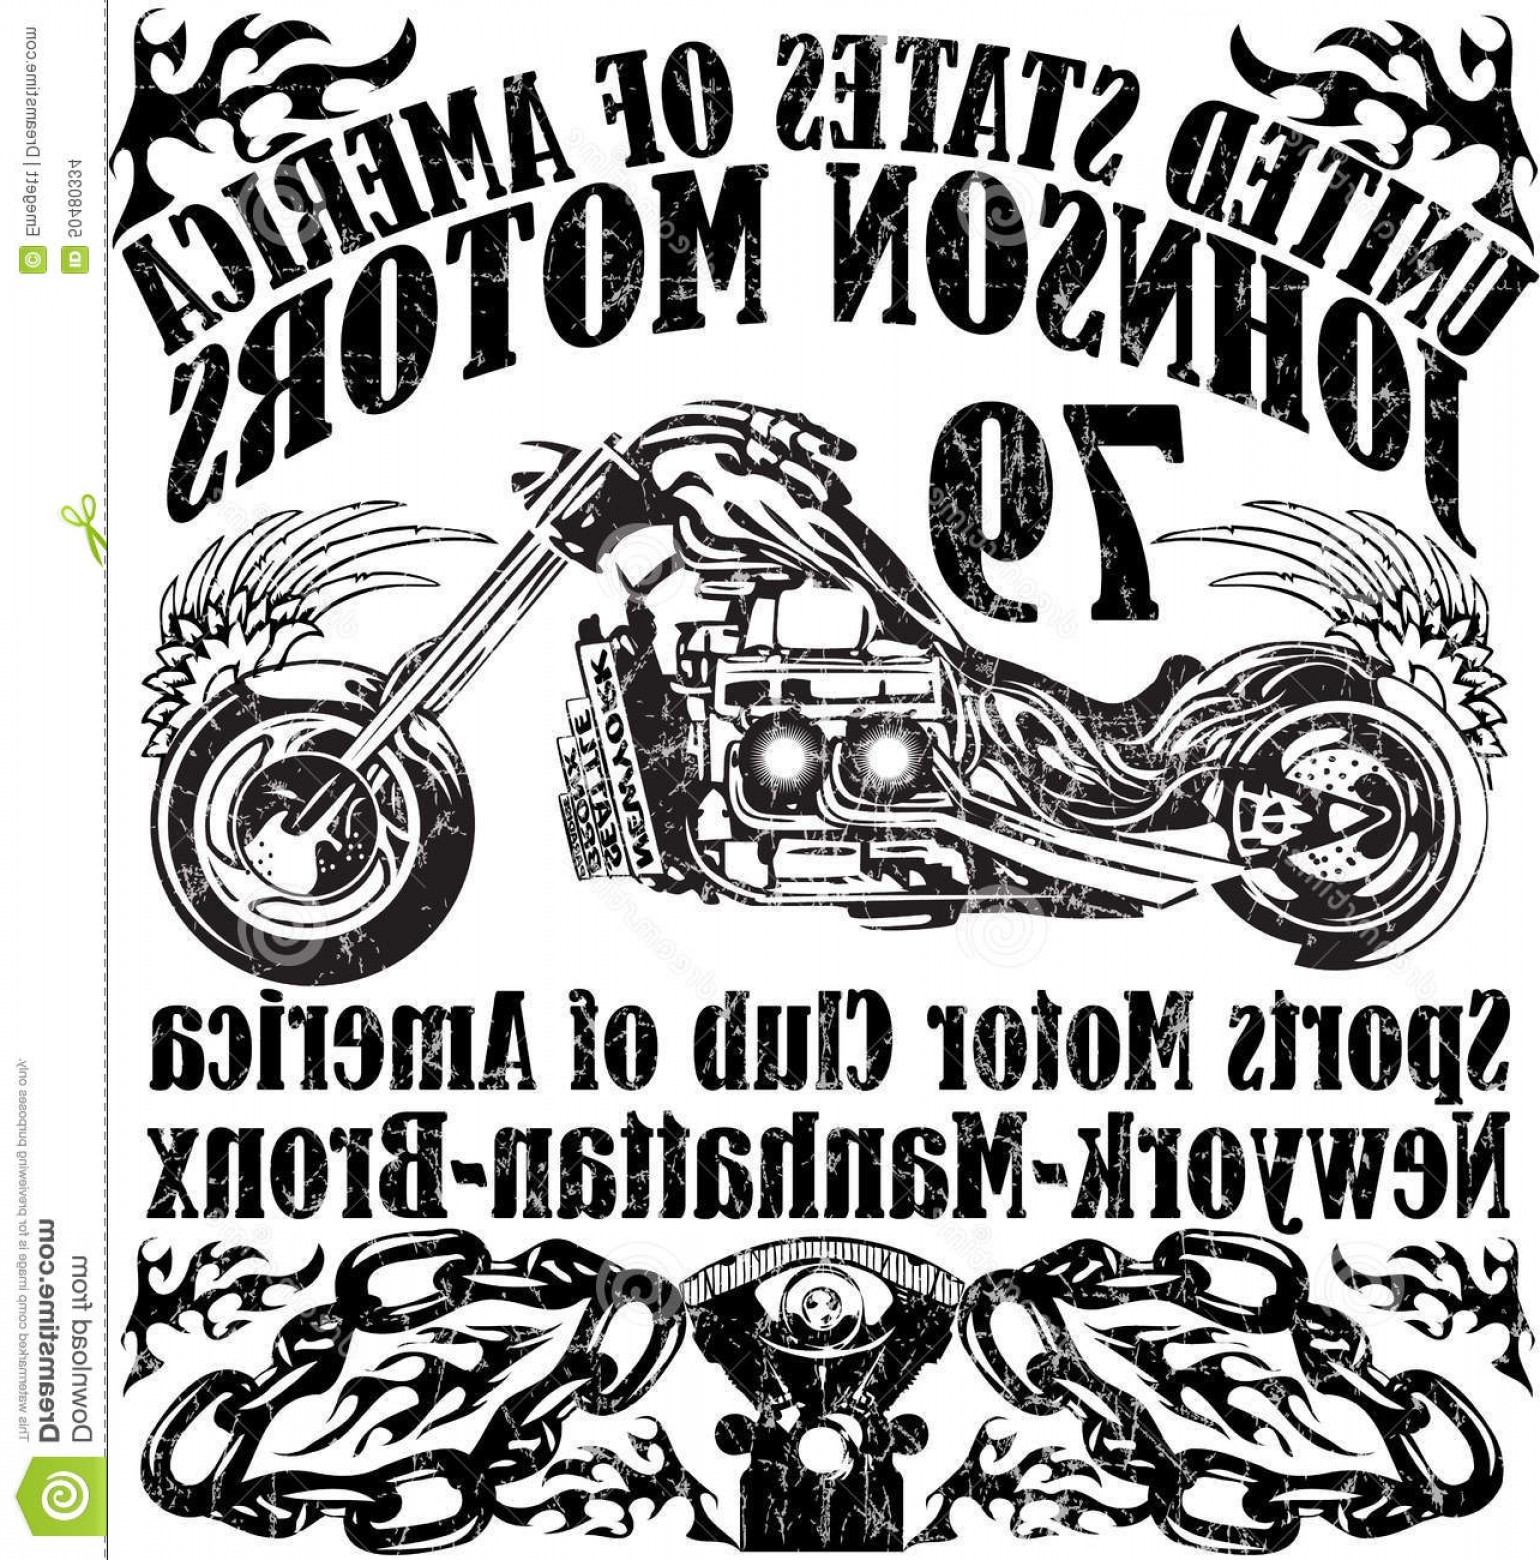 Motor Vector Graphics: Stock Illustration Motorcycle Raceway Typography T Shirt Graphics Vectors Man Graphic Vector Design Prints Vector Graphic Design Image